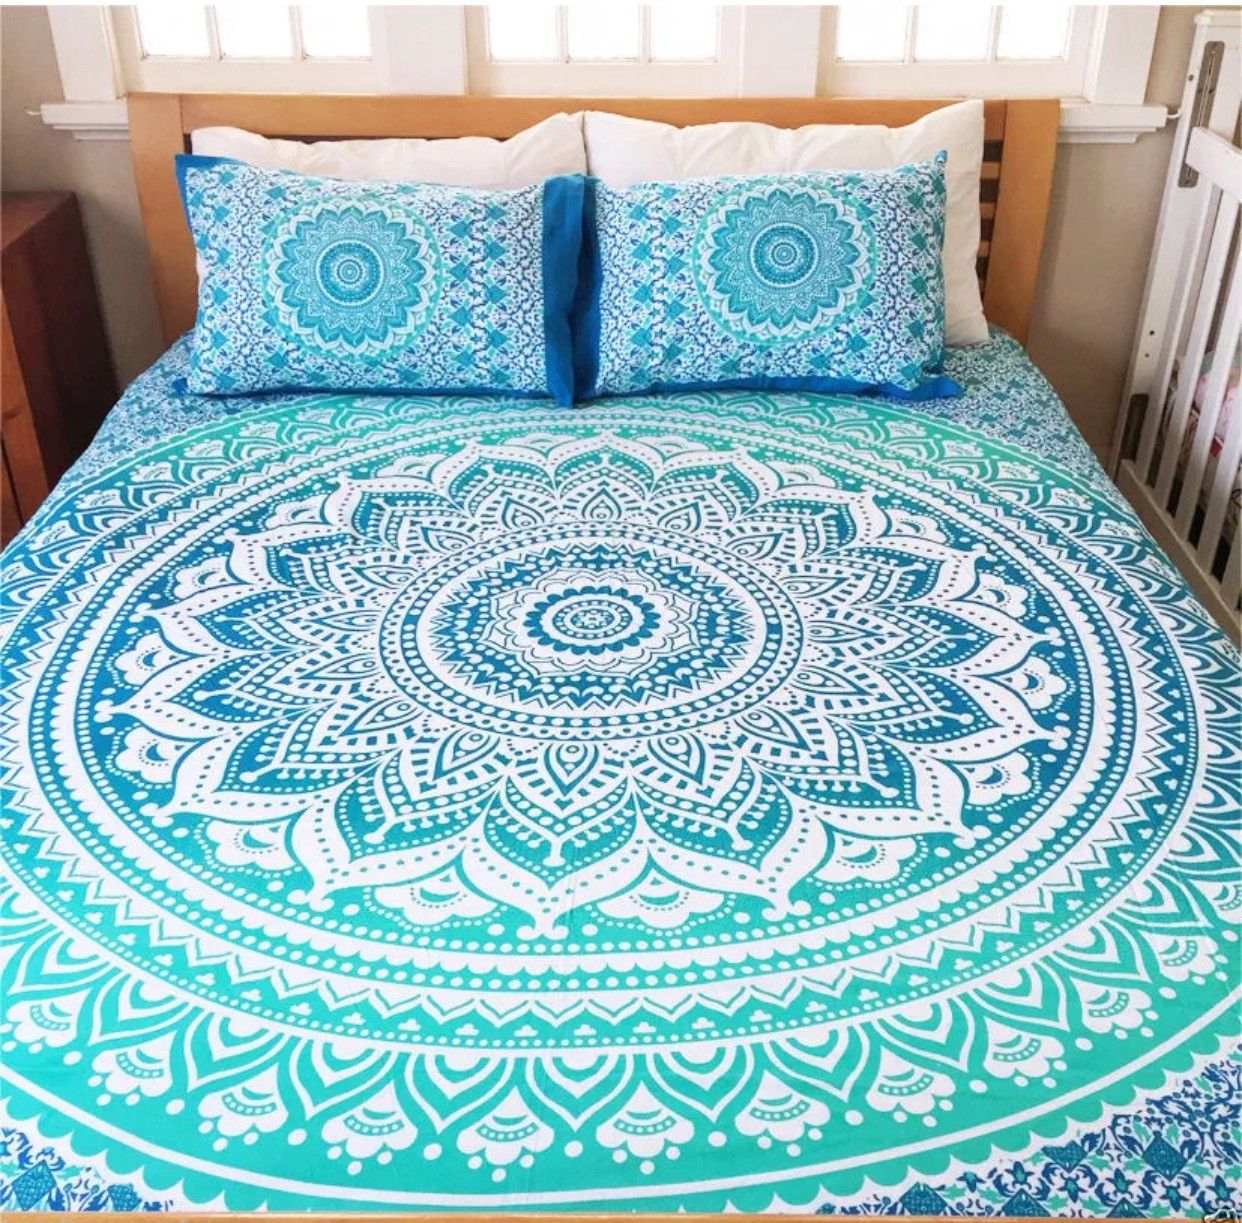 Mandala Queen Bed Cover W Pillow Covers Zen Like Products Com Bohemian Bed Covers Bed Covers Mandala Bedding